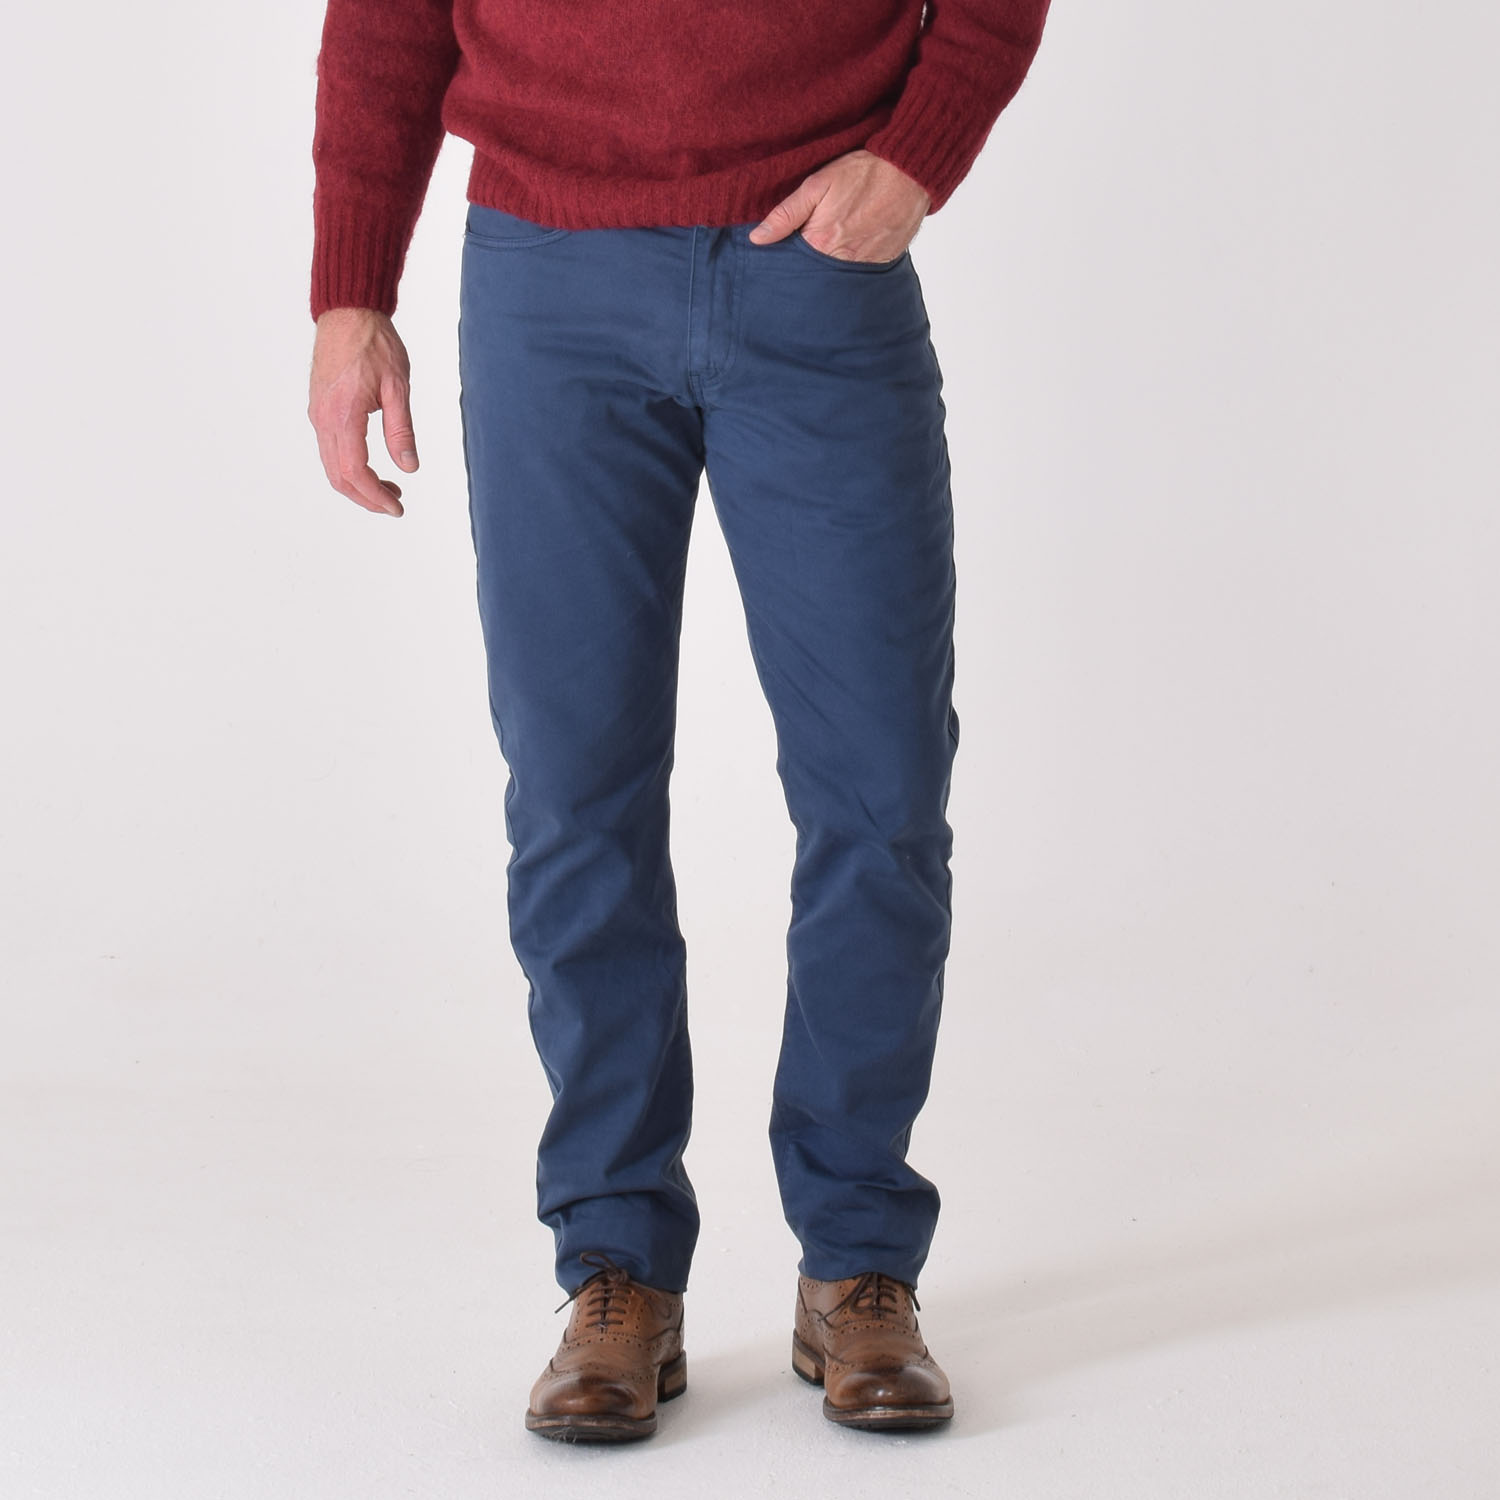 T-lab-Bude-Jeans-navy-blue